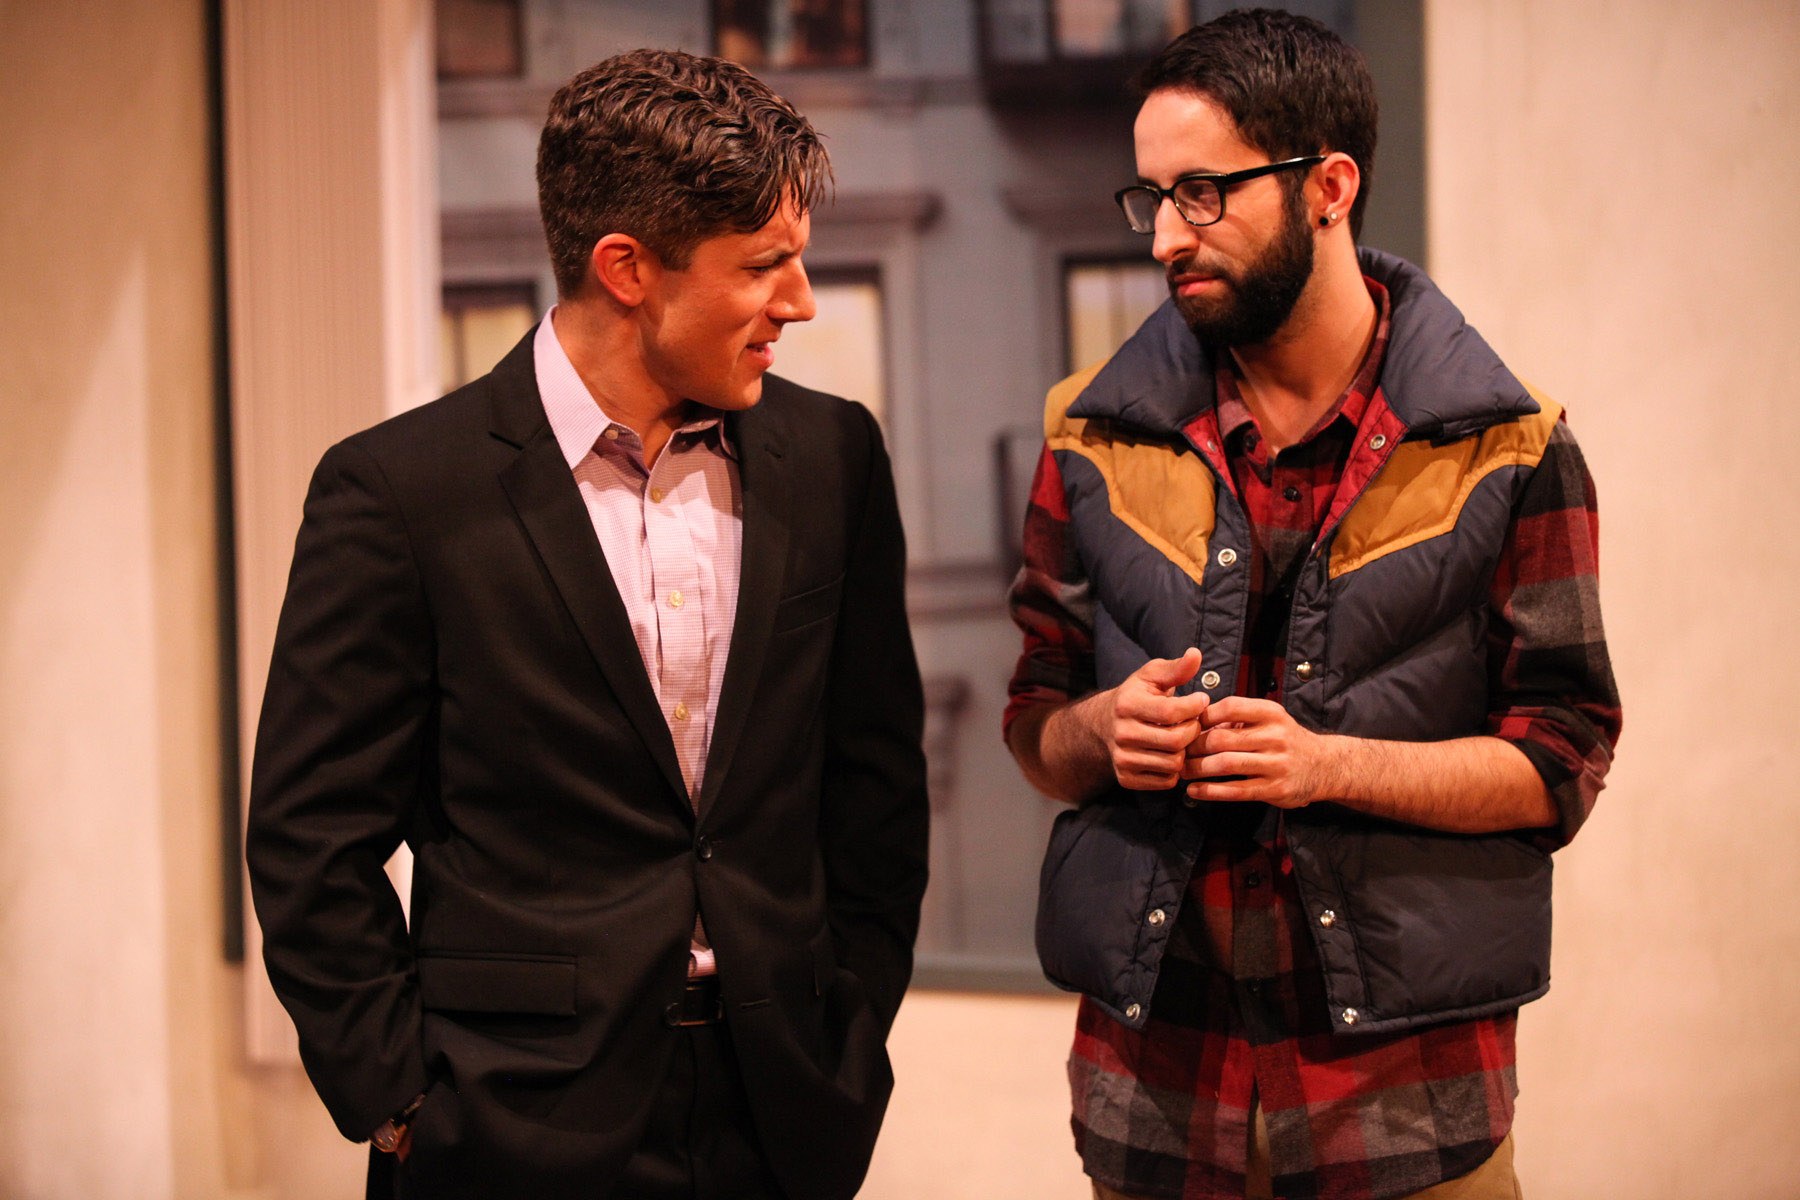 AstonRep's THE LYONS Runs Aug 27 - Sept. 27 at the Raven Theatre 1 AstonRep Theatre Companyis pleased to kick-off its 2015-16 season with the Chicago premiere ofNicky Silver'sdarkly humorous family dramaTHE LYONS, directed by Company MemberDerek Bertelsen*,playingAugust 27 – September 27, 2015atThe Raven Theatre(West Stage), 6157 N. Clark St. in Chicago.Tickets are currently on sale atwww.astonrep.comor by calling(773) 828-9129.